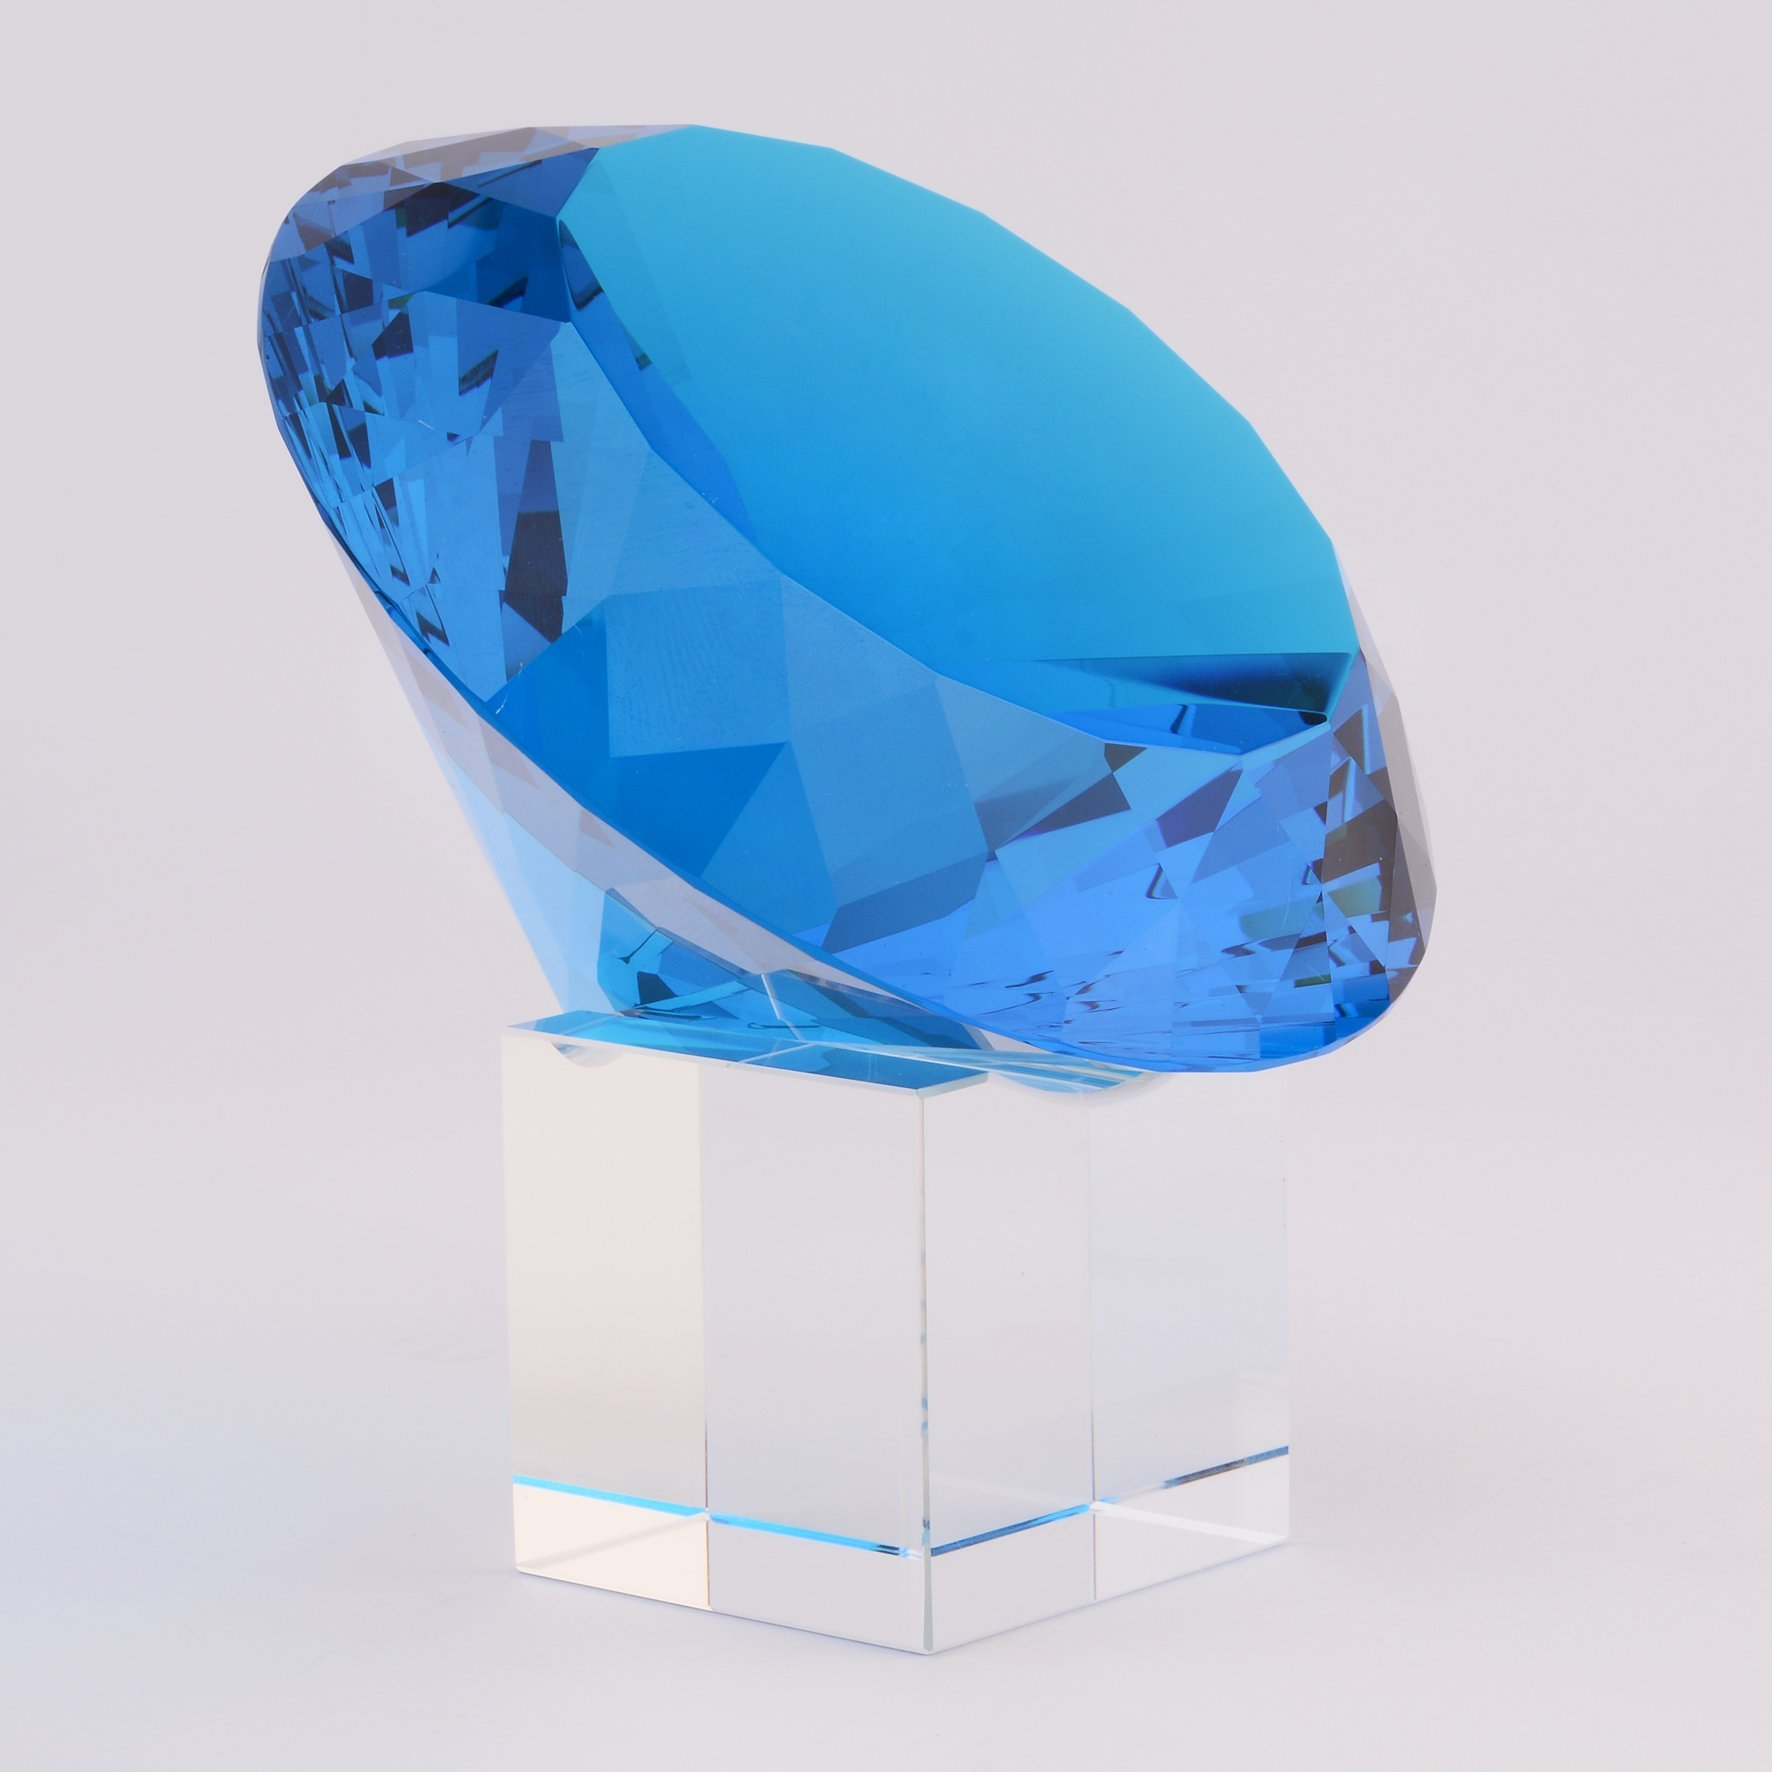 BRLIGHTING Cobalt Blue crystal Diamond Paperweight on stand for Office, Lovely Gift for Friends and Family (D120mm / 4.73'') by BRLIGHTING (Image #2)